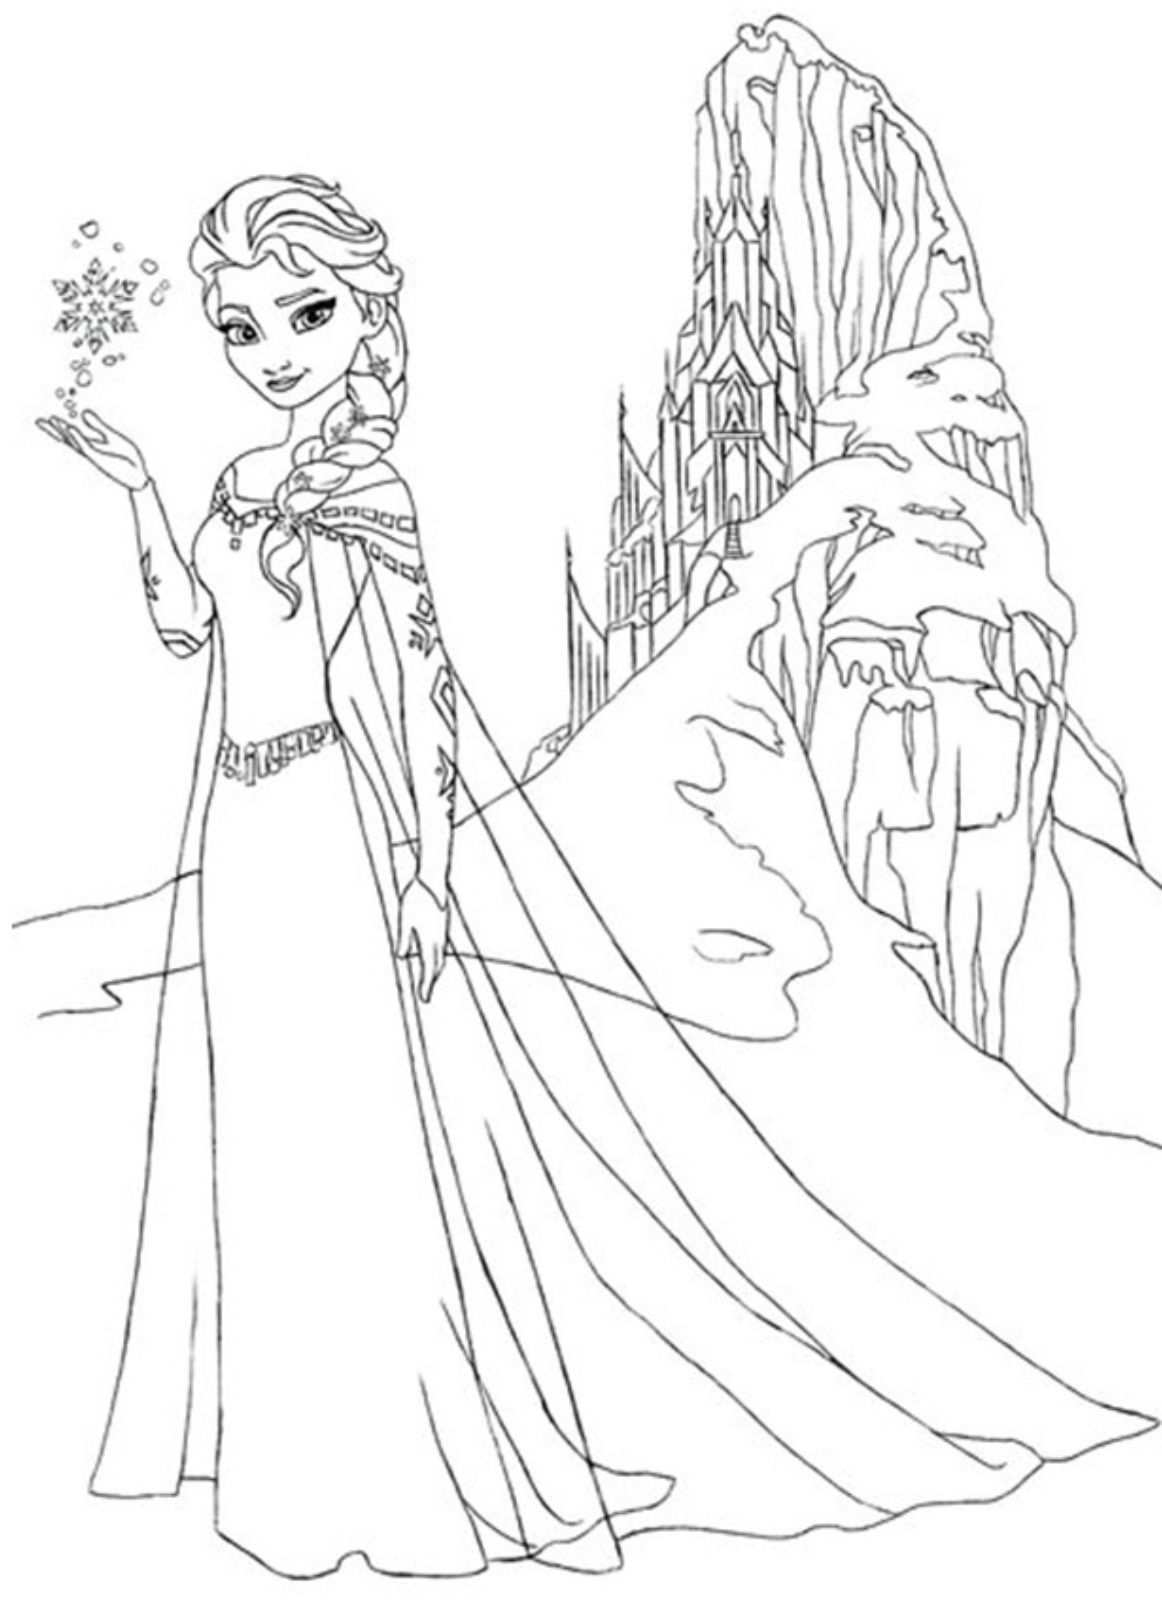 Download Frozen Coloring Page Or Print Frozen Coloring Page From Pagestocolor Net Elsa Coloring Pages Disney Princess Coloring Pages Disney Coloring Pages